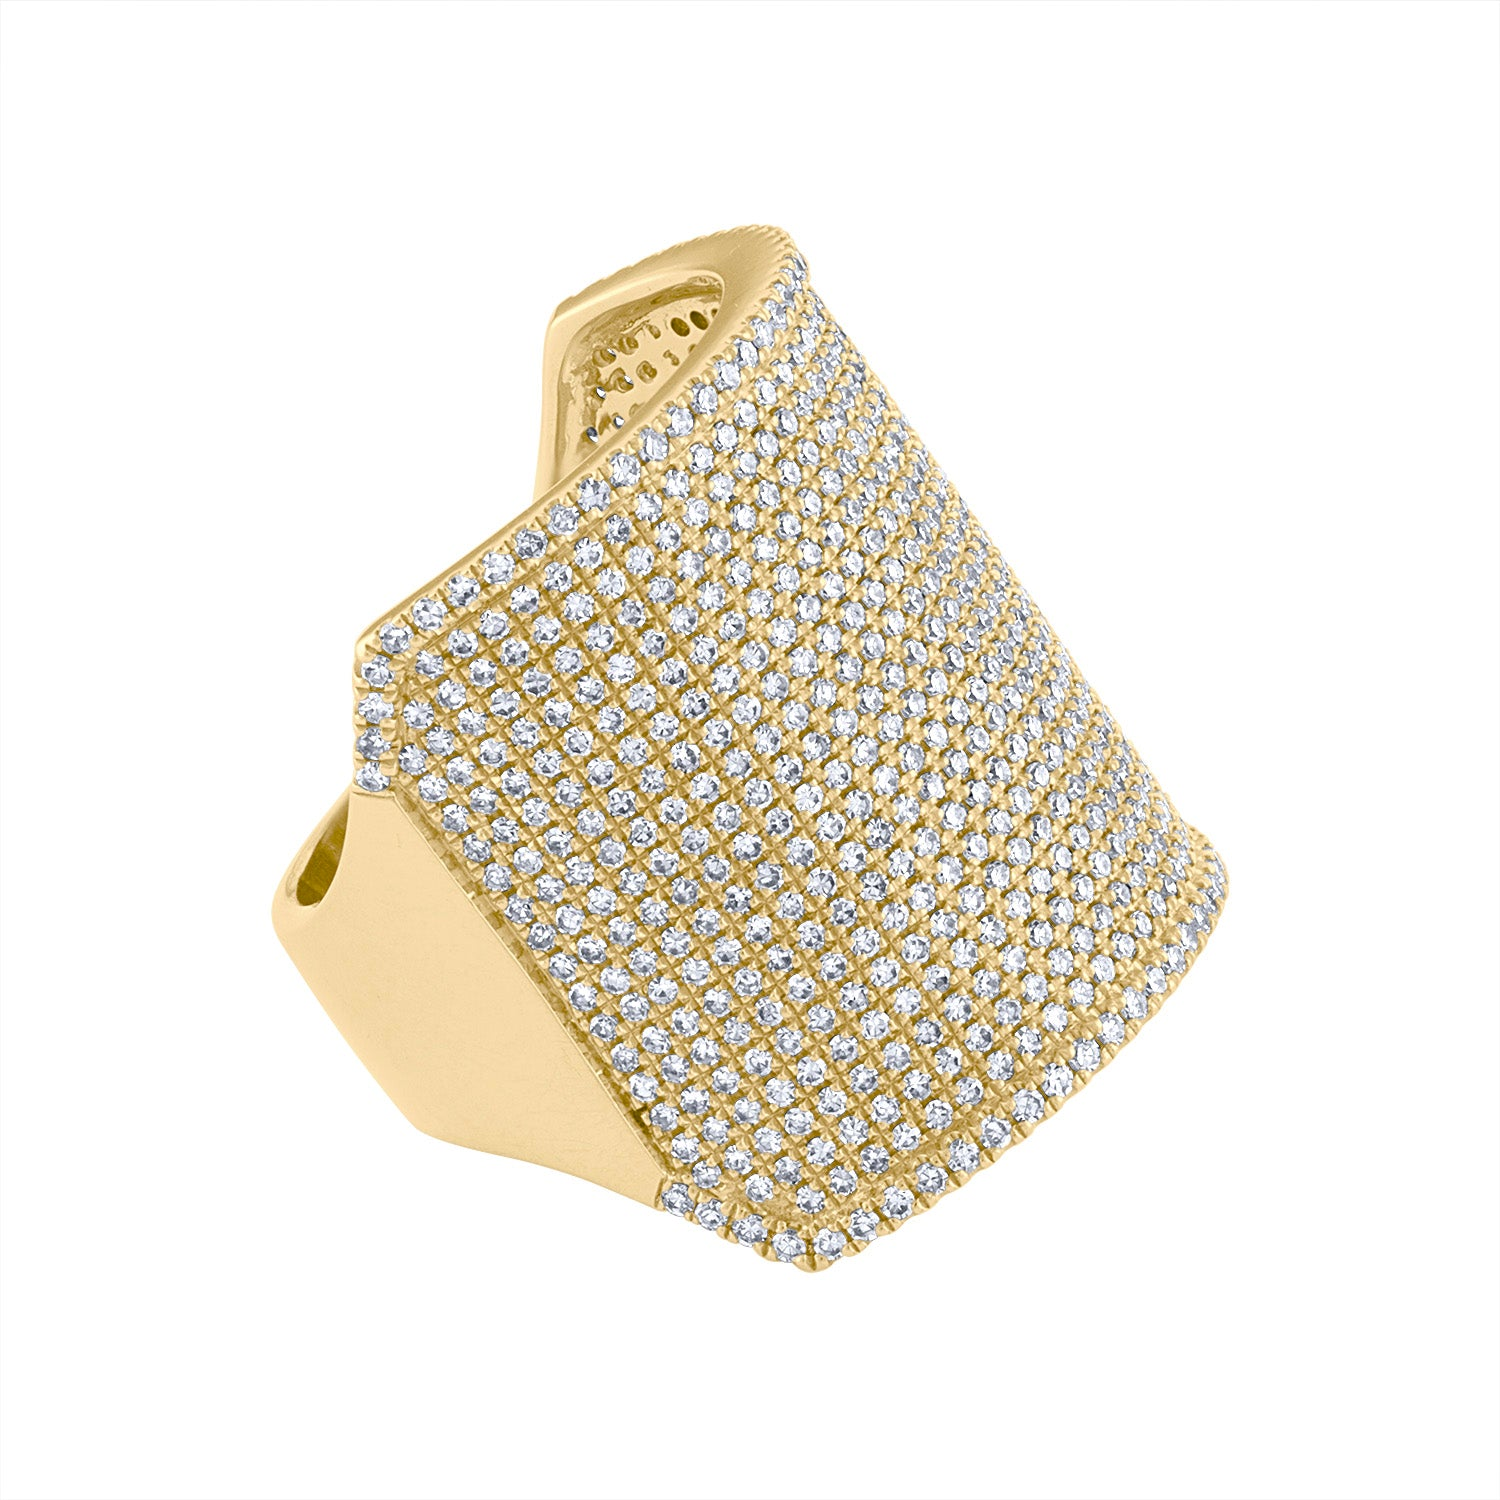 14KT GOLD PAVE DIAMOND WIDE RECTANGULAR RING